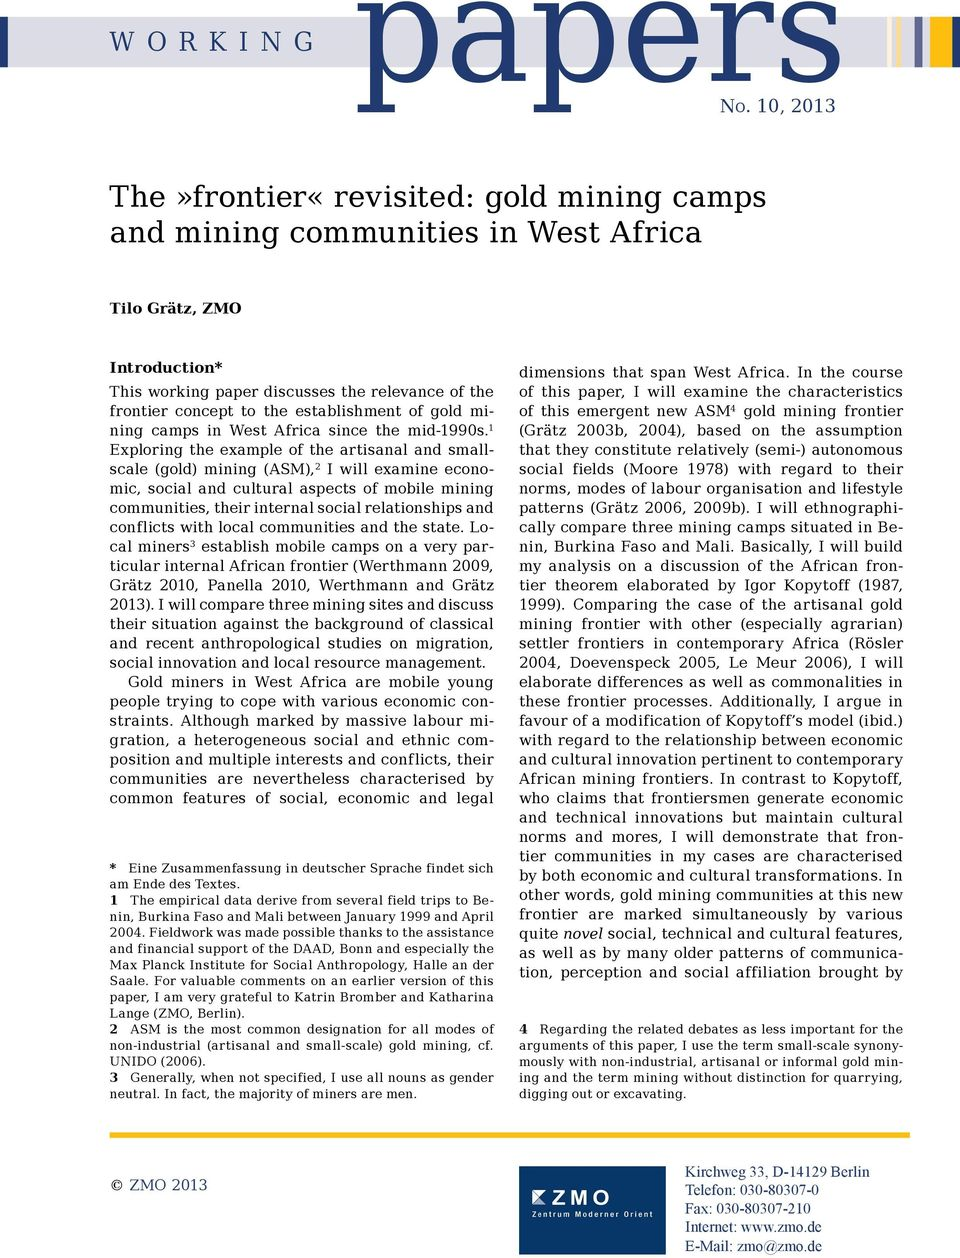 establishment of gold mining camps in West Africa since the mid-1990s.